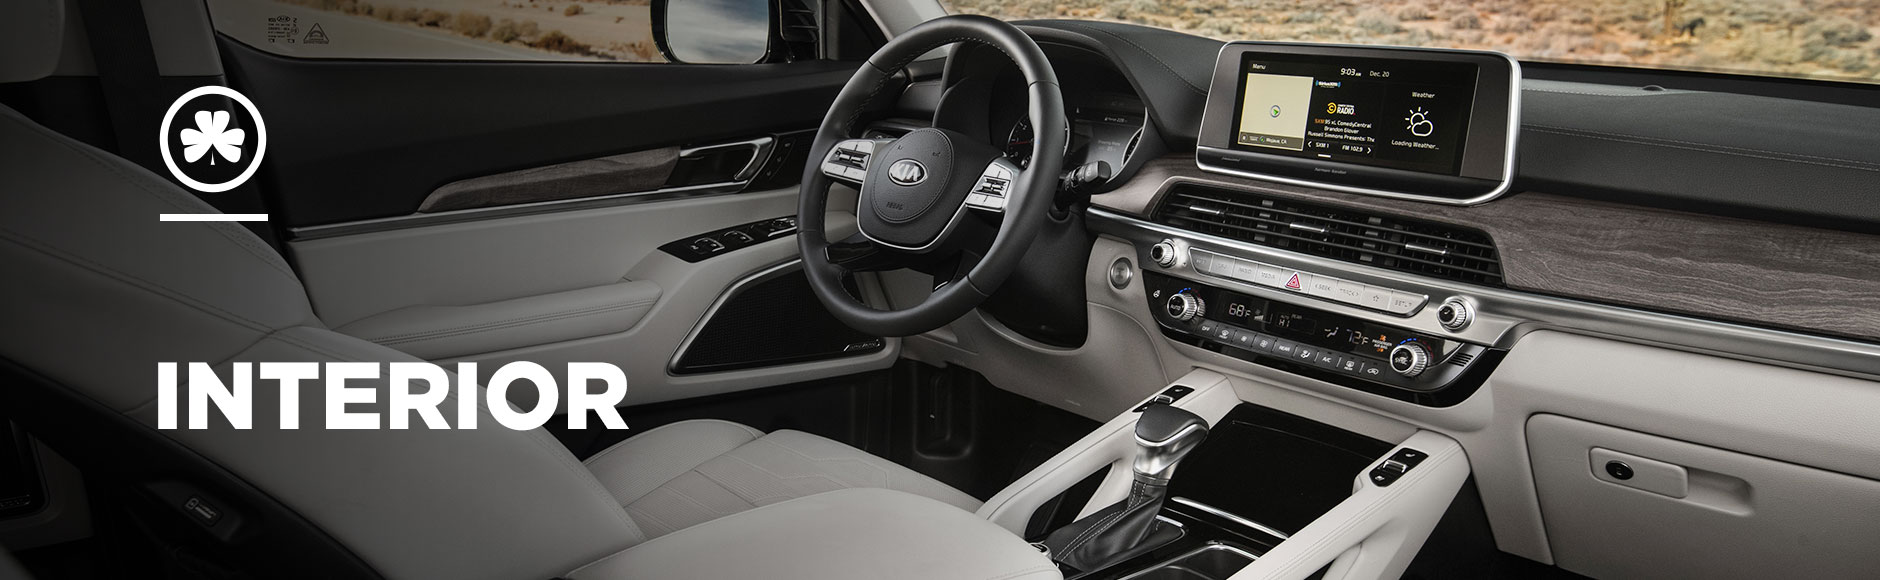 Kia Telluride Interior banner - light tan leather